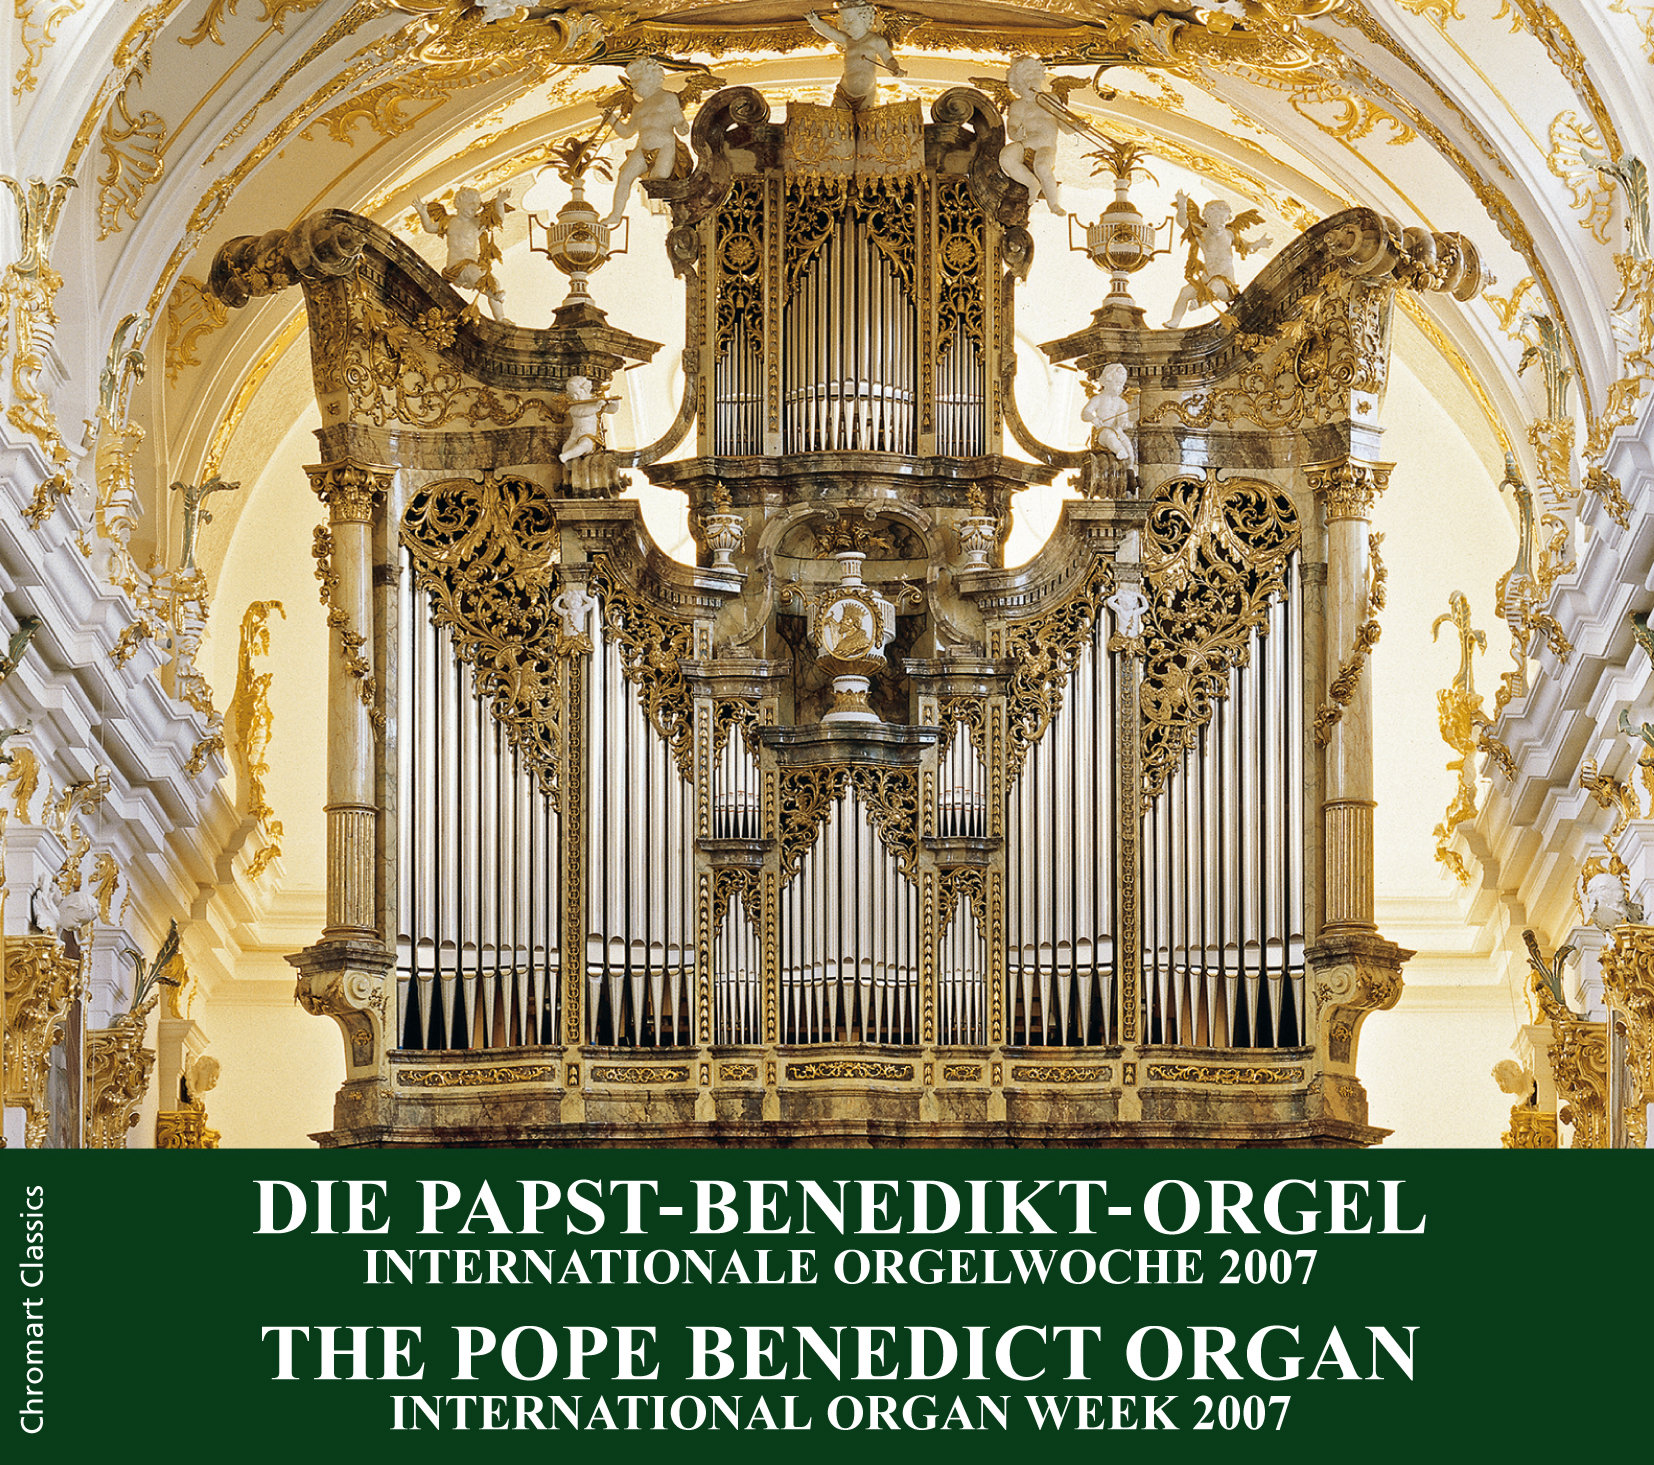 The Pope Benedict Organ - Int. Organ Week 2007